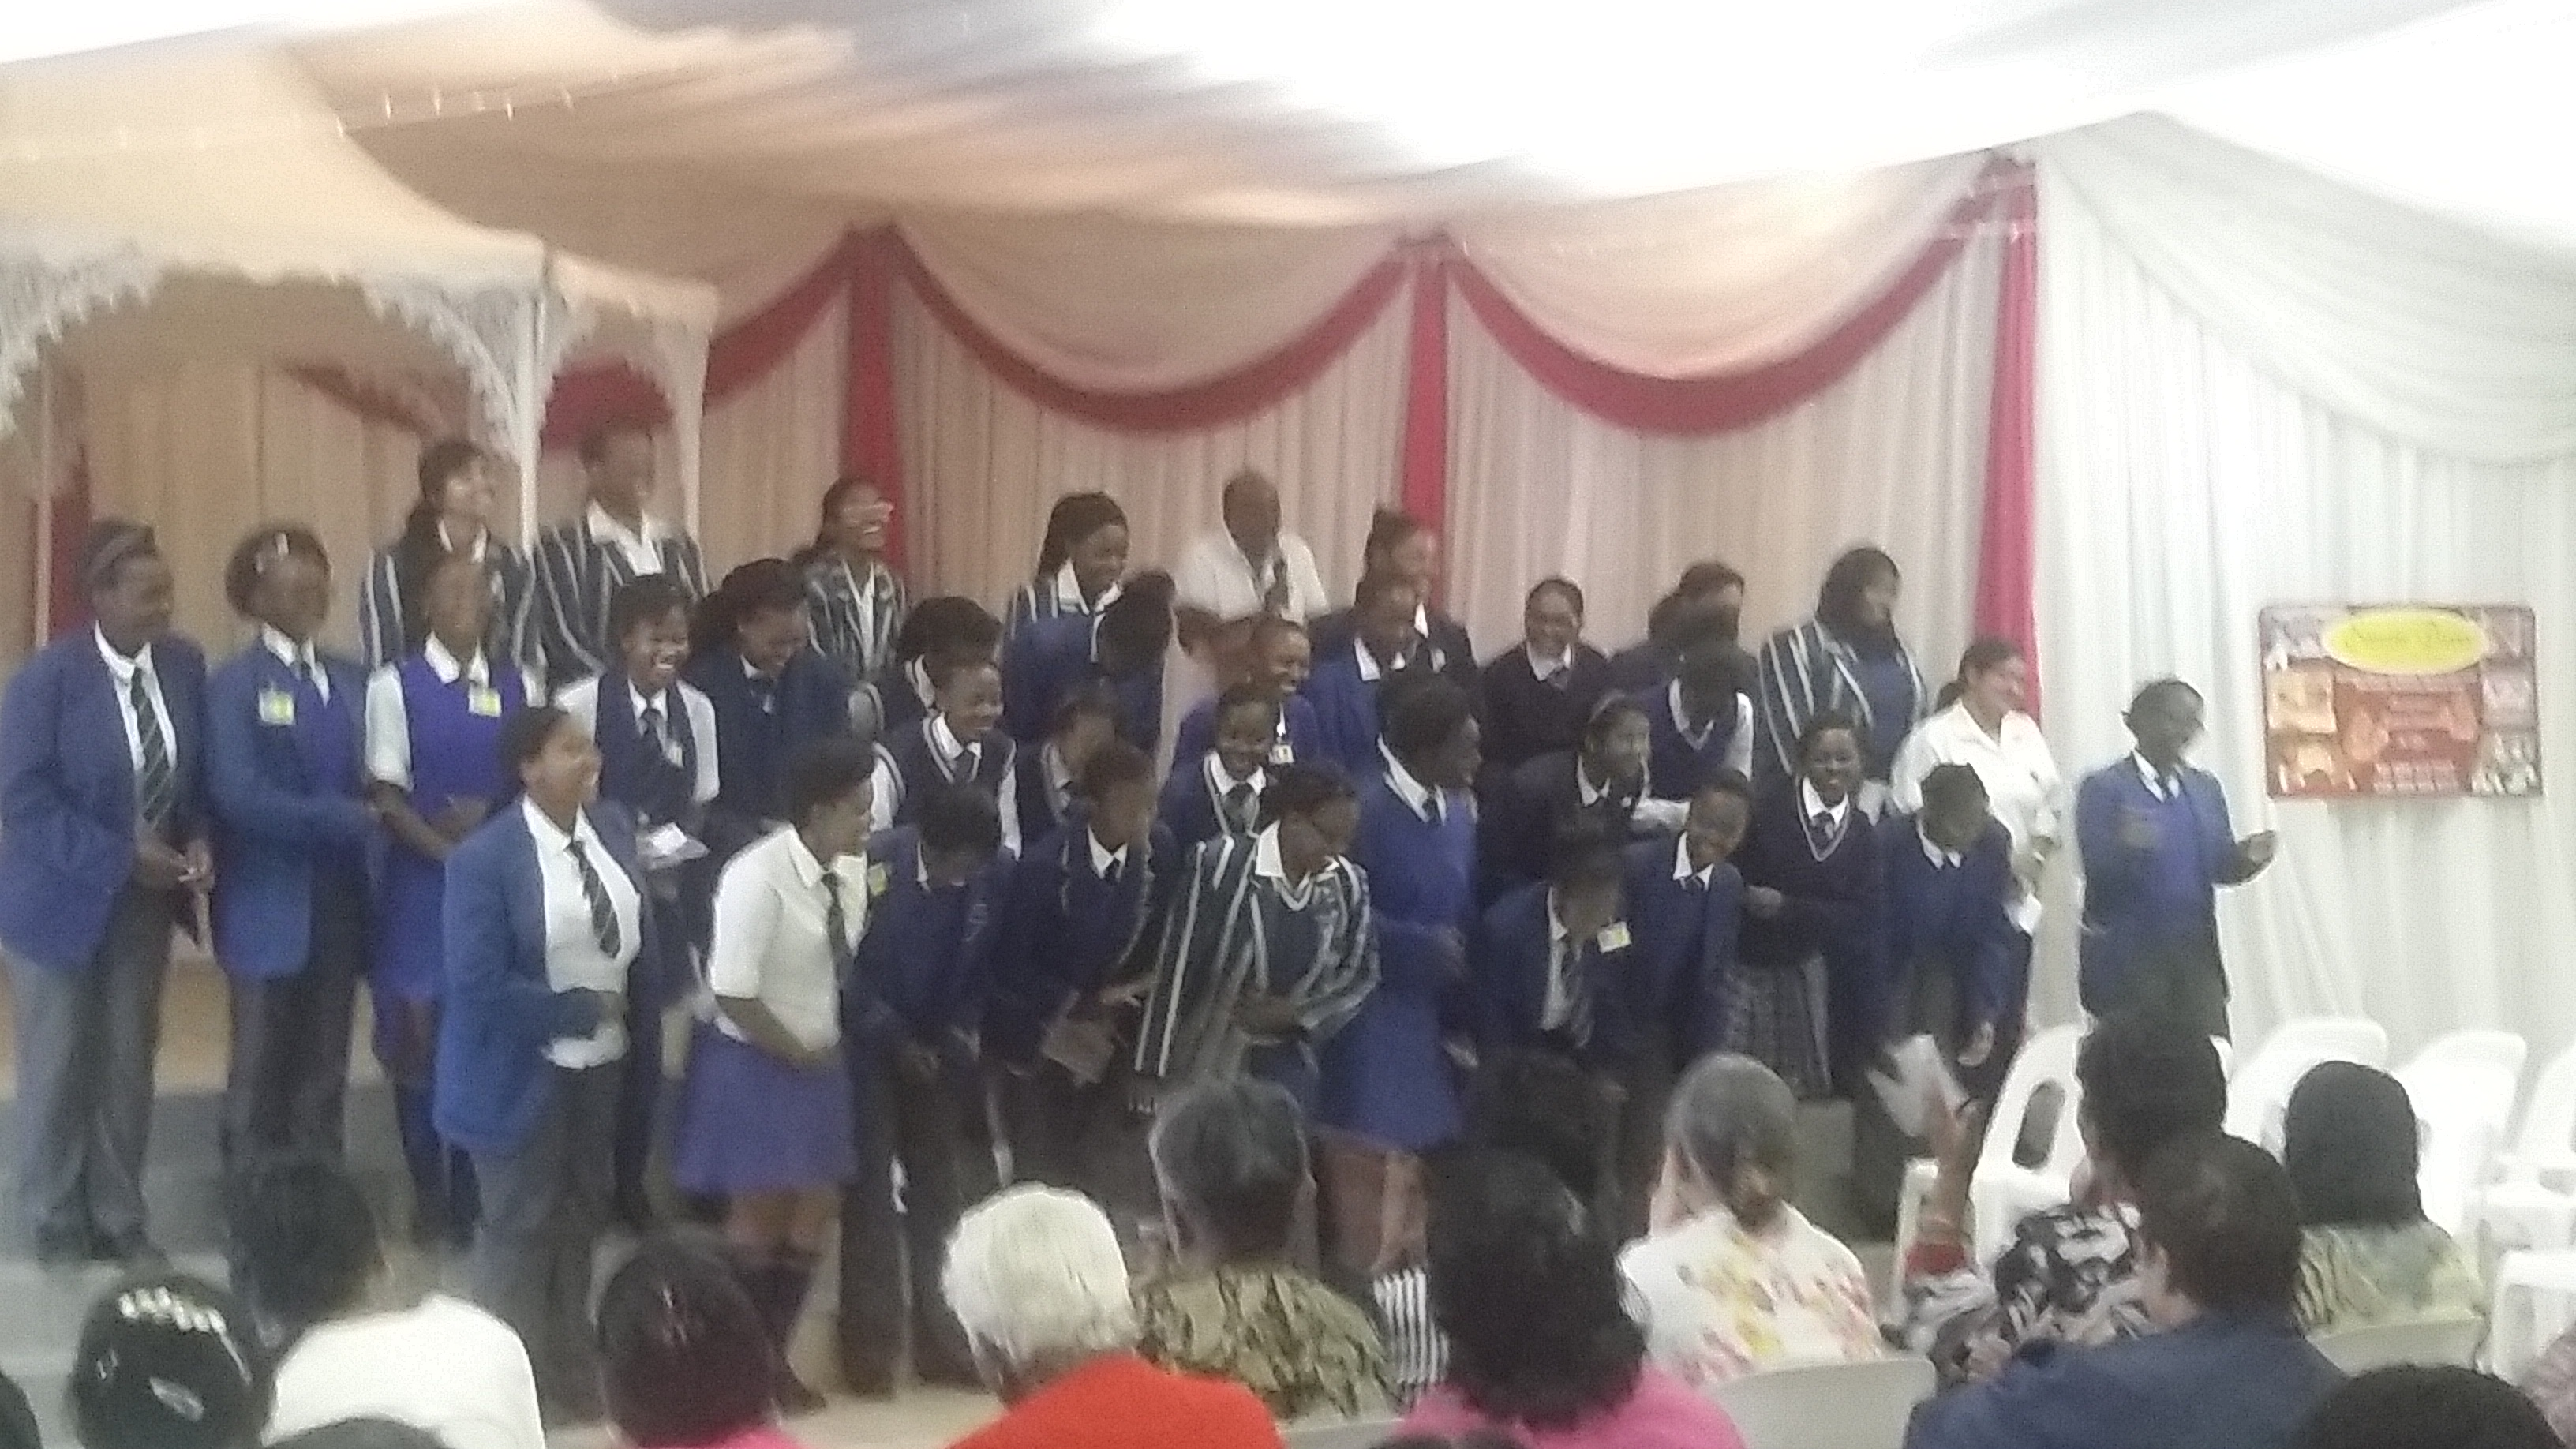 Mother's Day_Senior Citizens concert